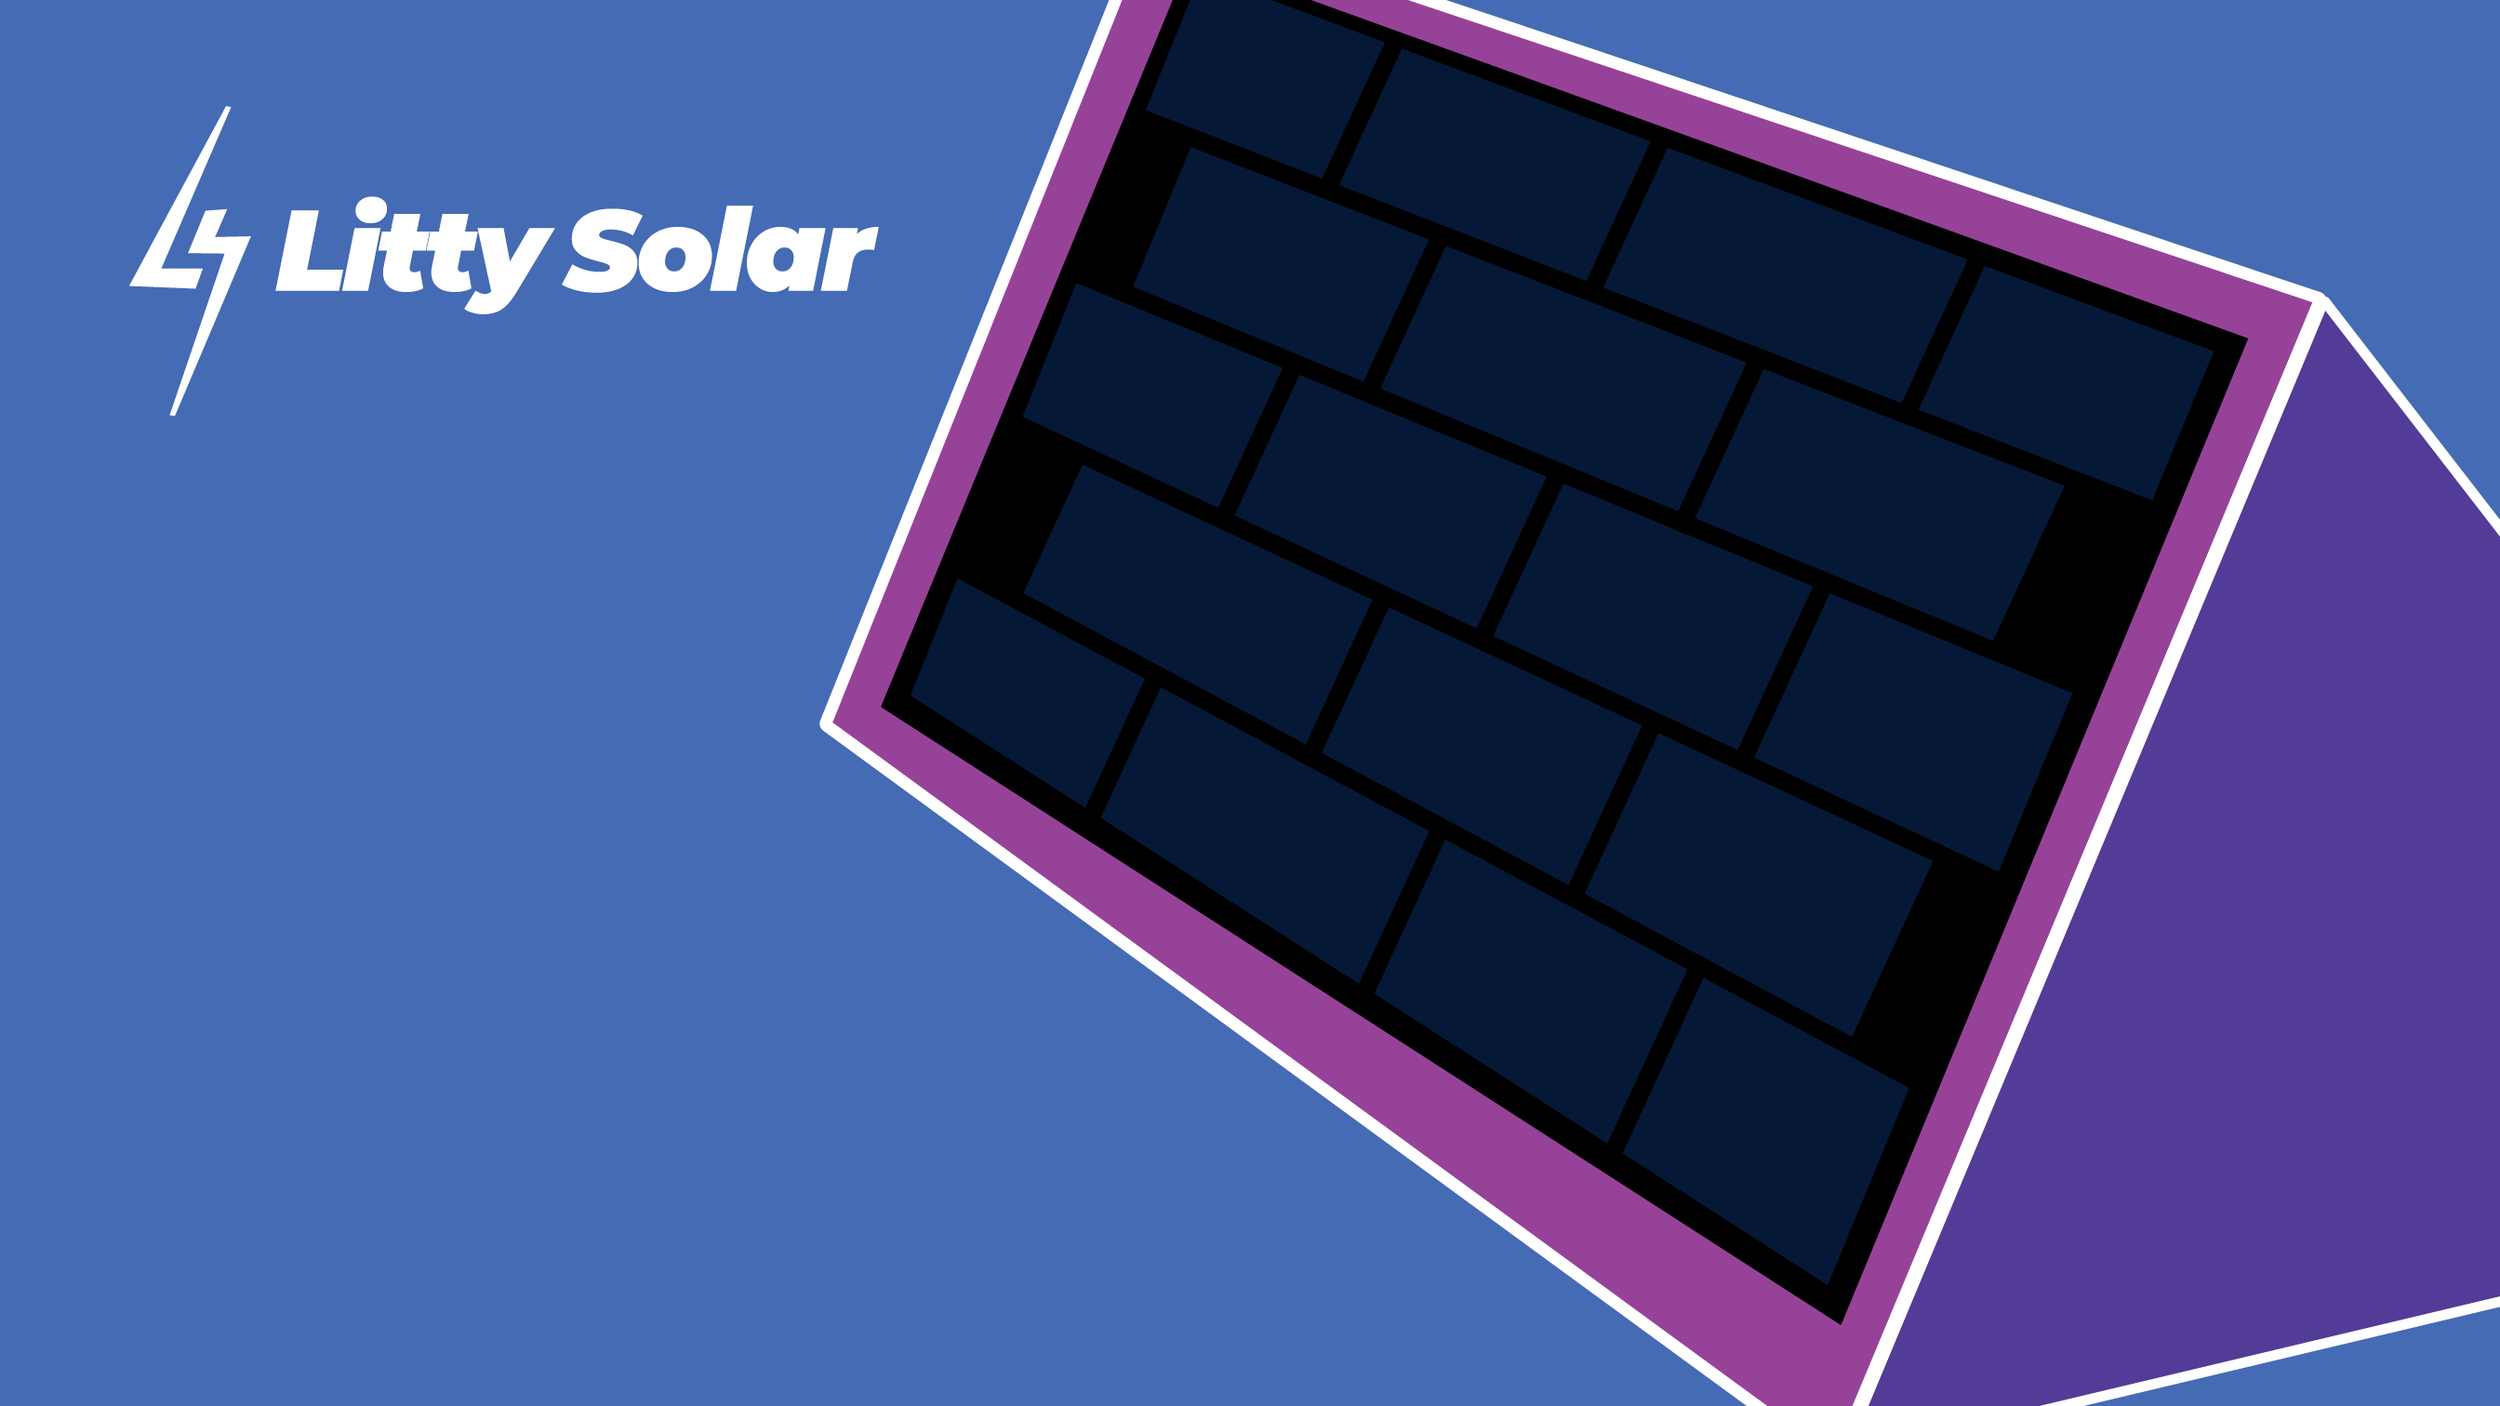 Litty Solar is the first and only solar shingle installer in Minnesota.